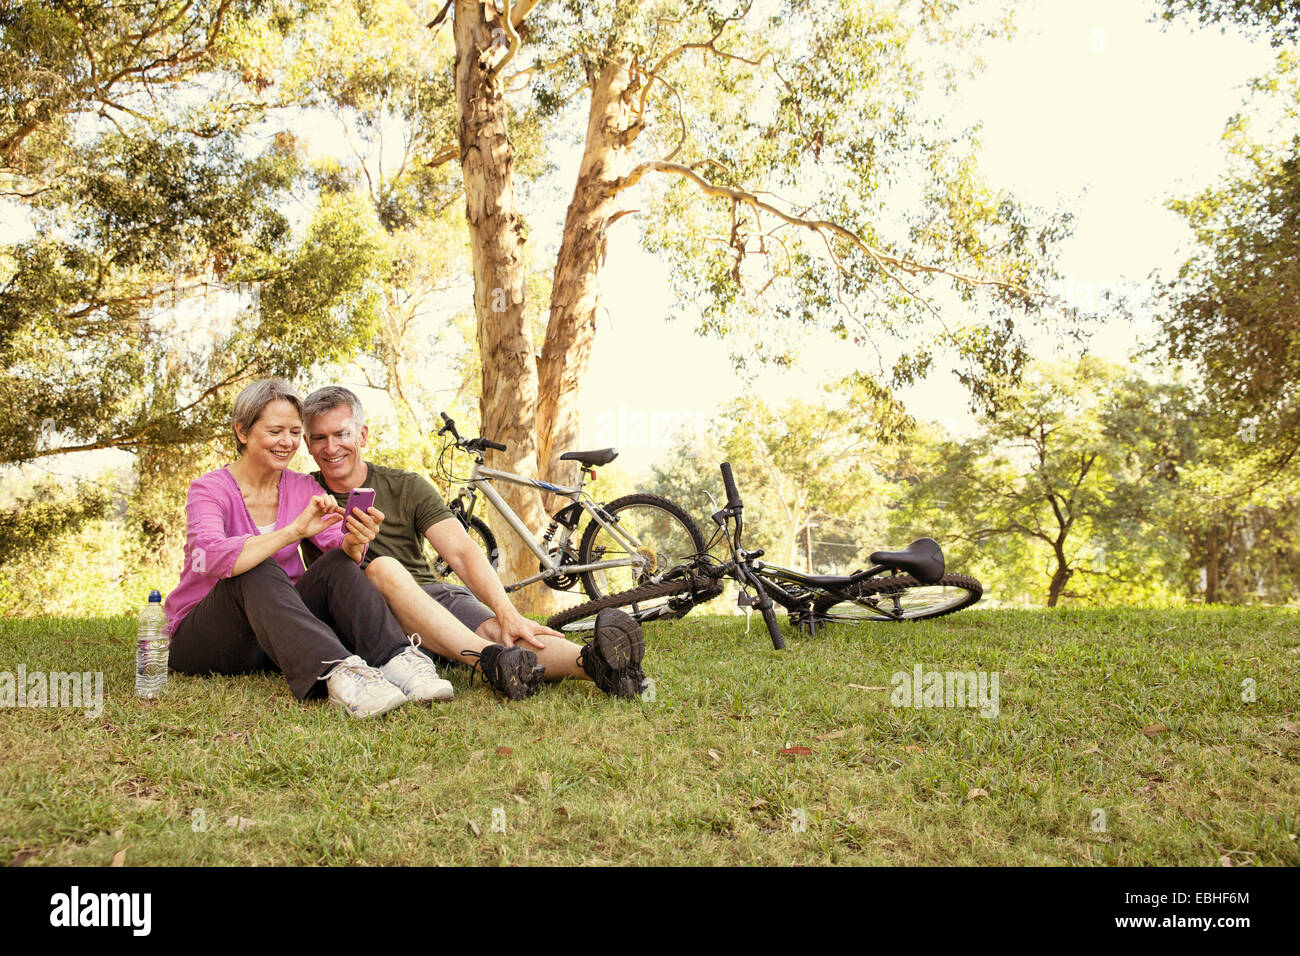 Vélo mature couple sitting in park looking at smartphone Photo Stock